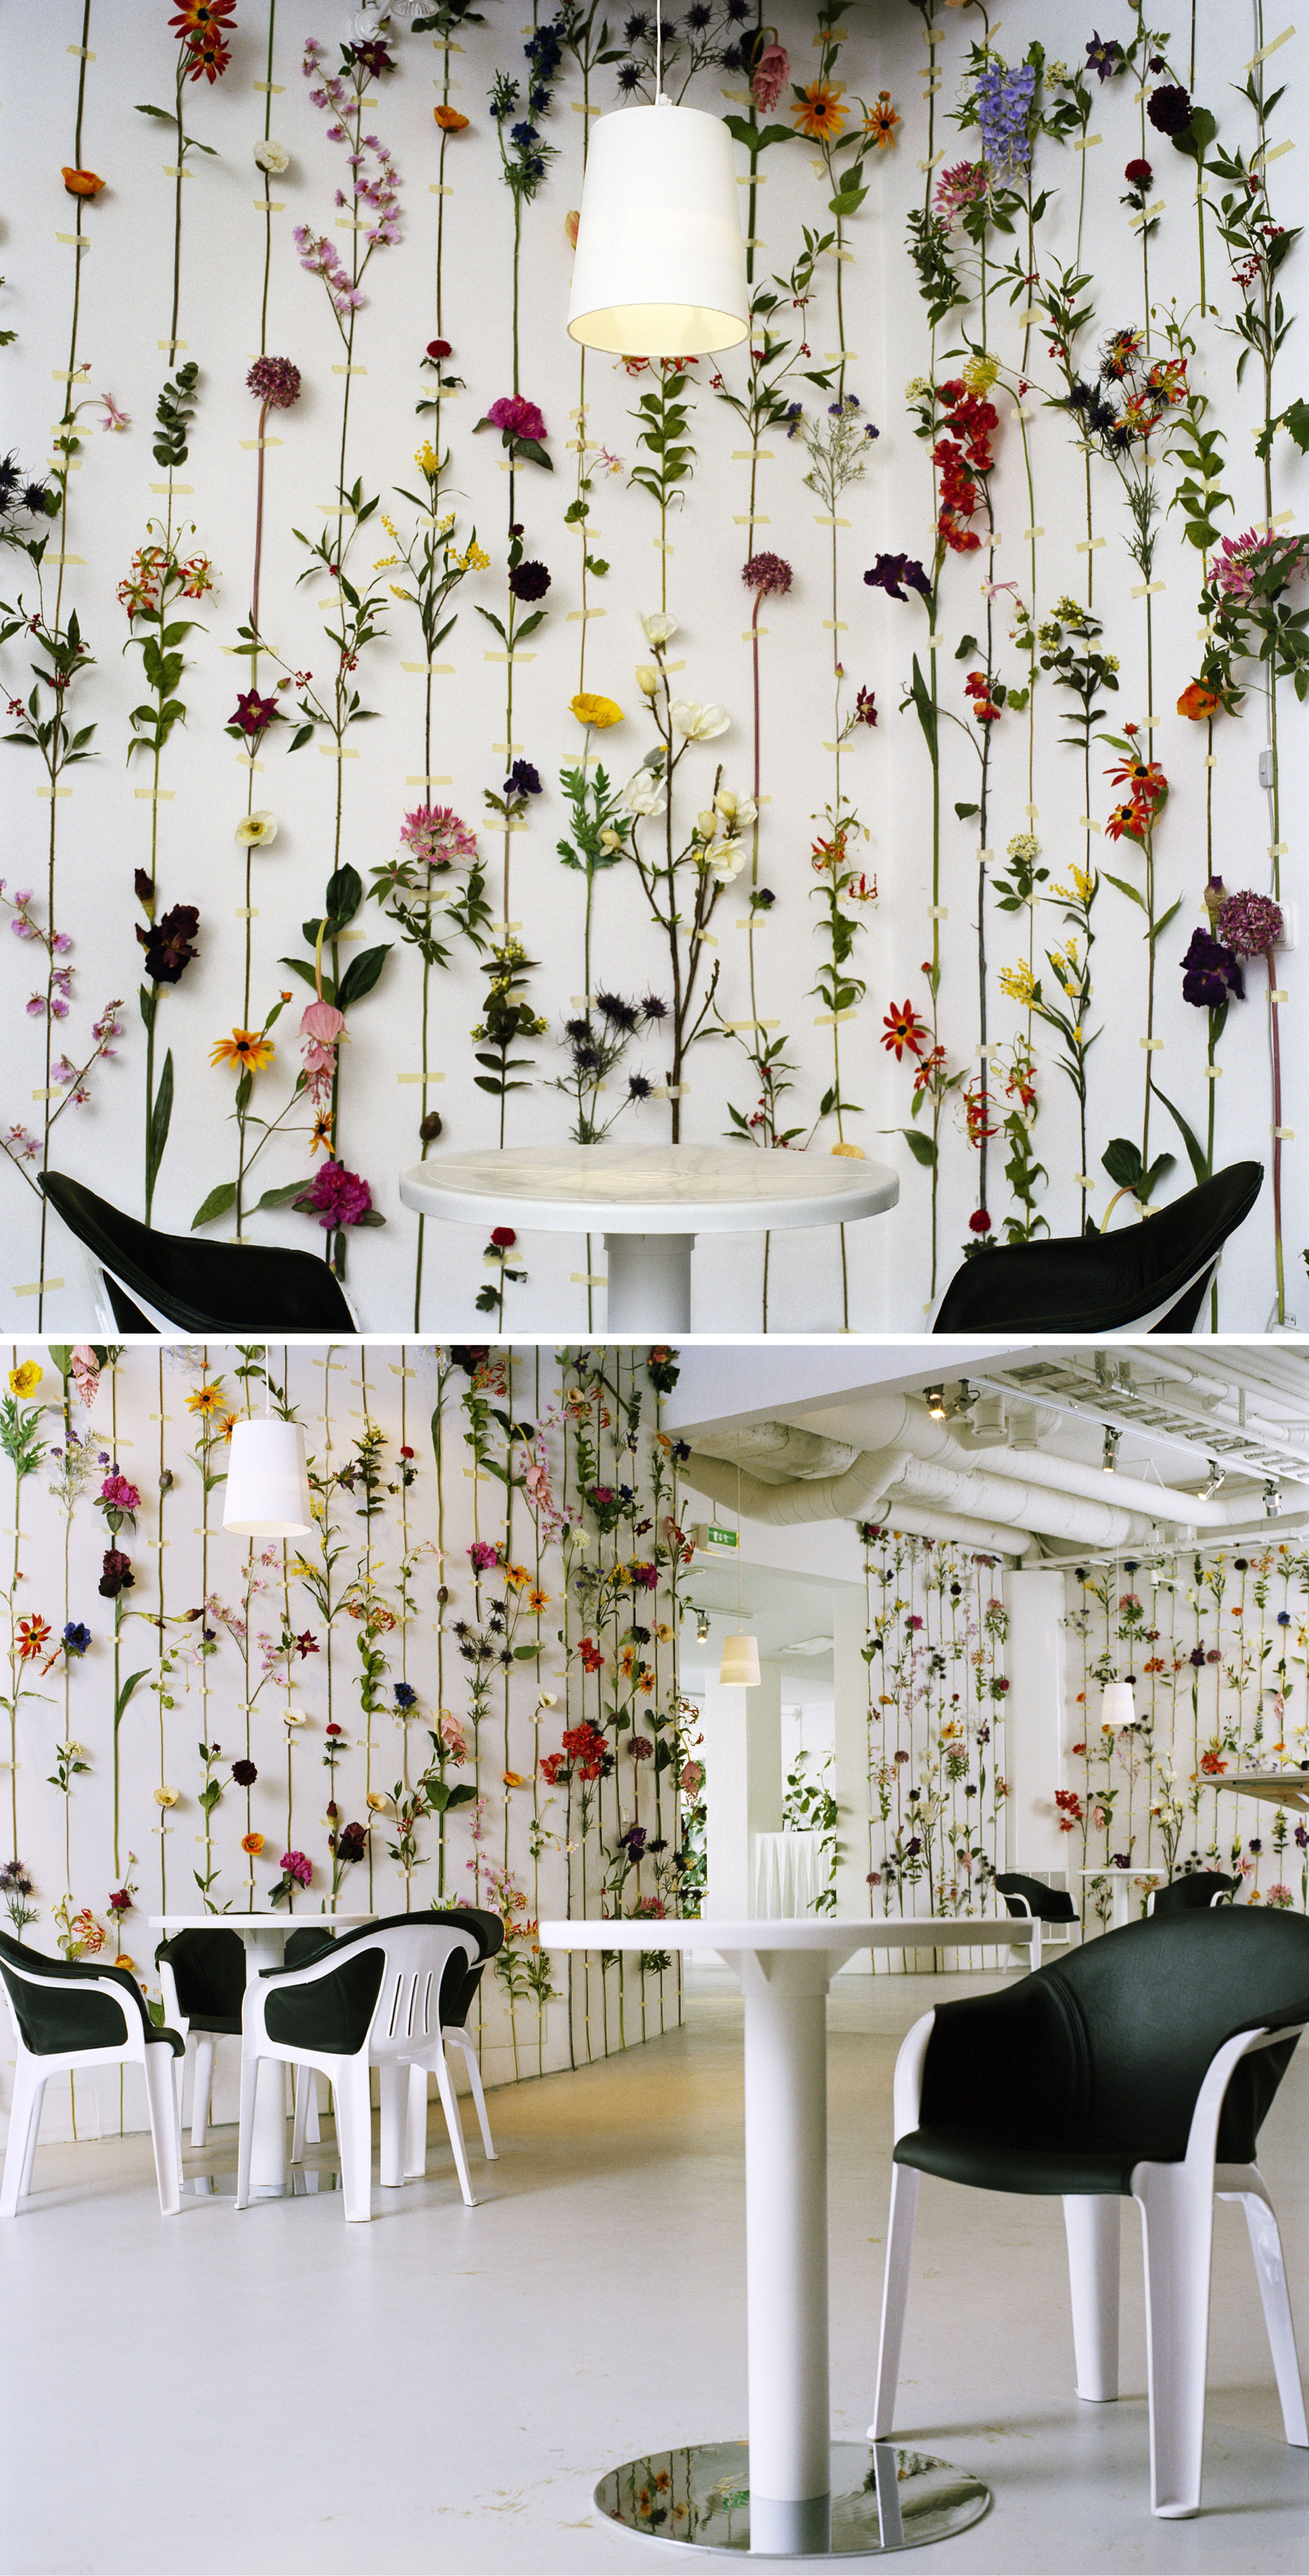 an installation of silk and plastic flowers simply mounted on walls by swedish design group front - Walls By Design